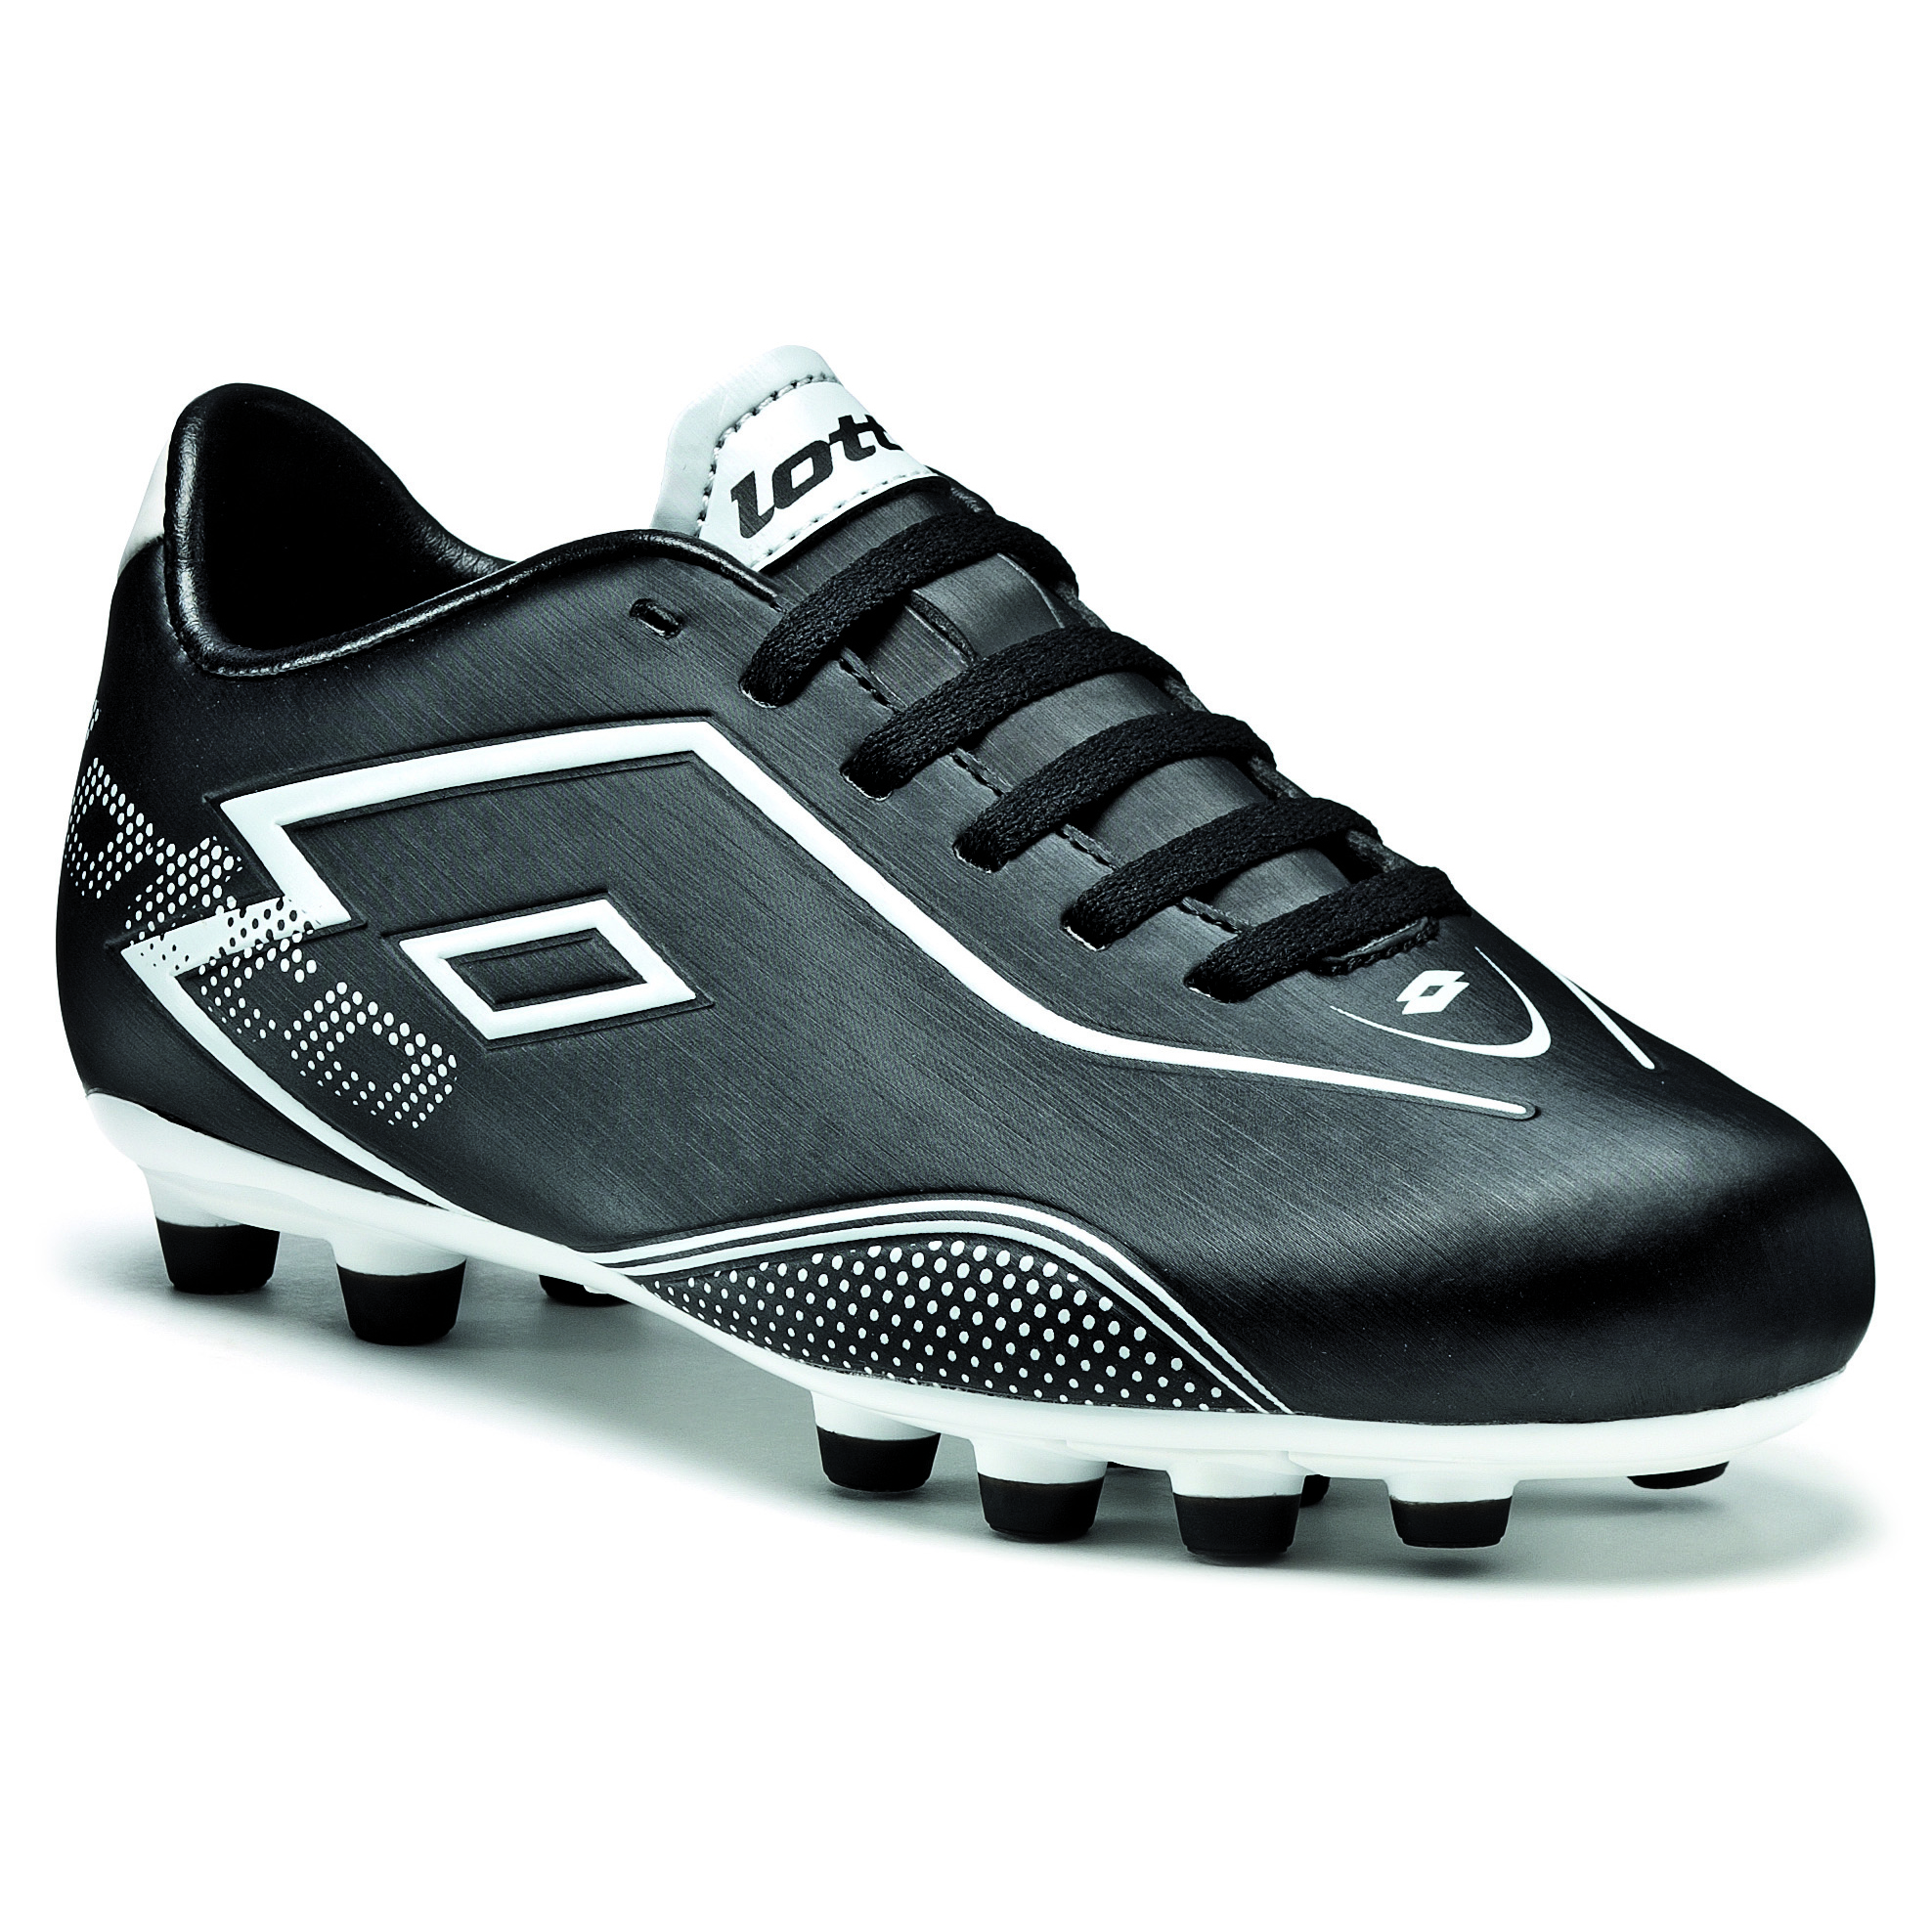 Lotto Zhero Gravity.II 700 FG Black/White Kids